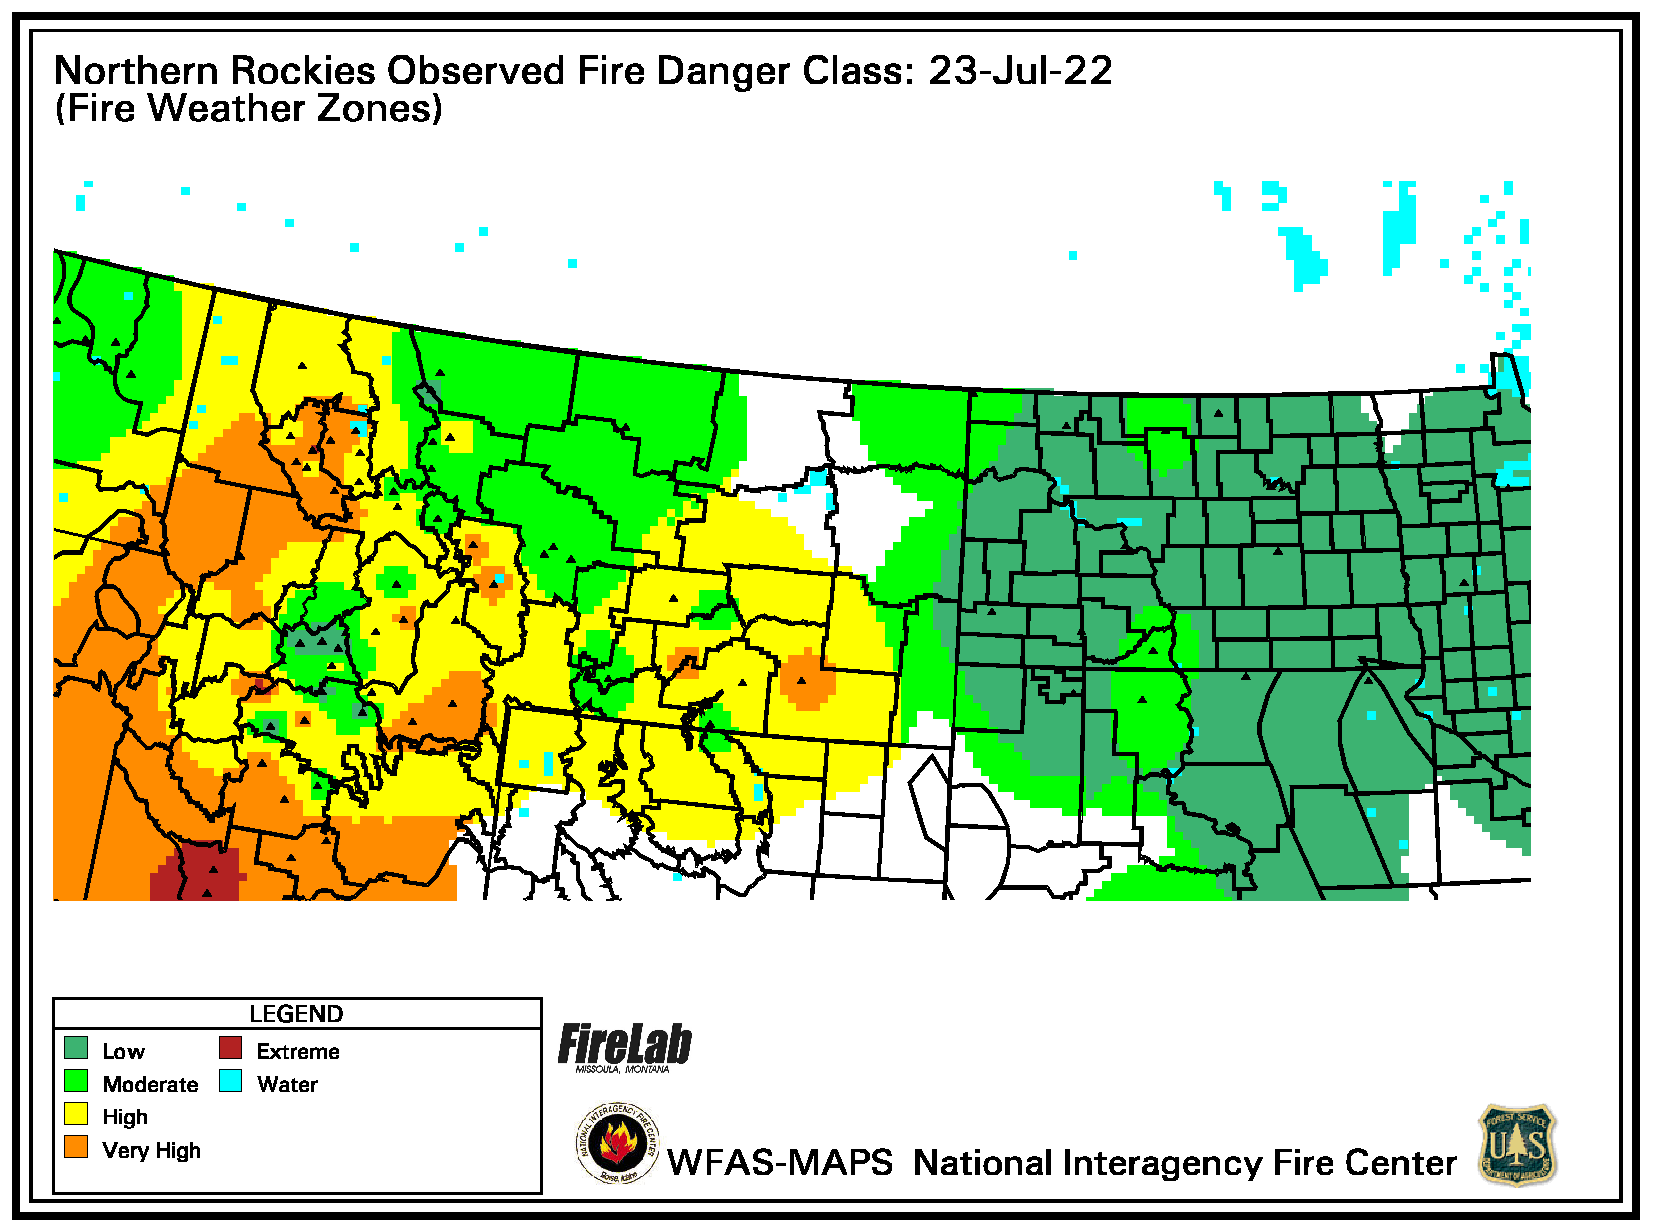 (Graphic) Map of Northern Rockies Geographic Area Observed Fire Danger